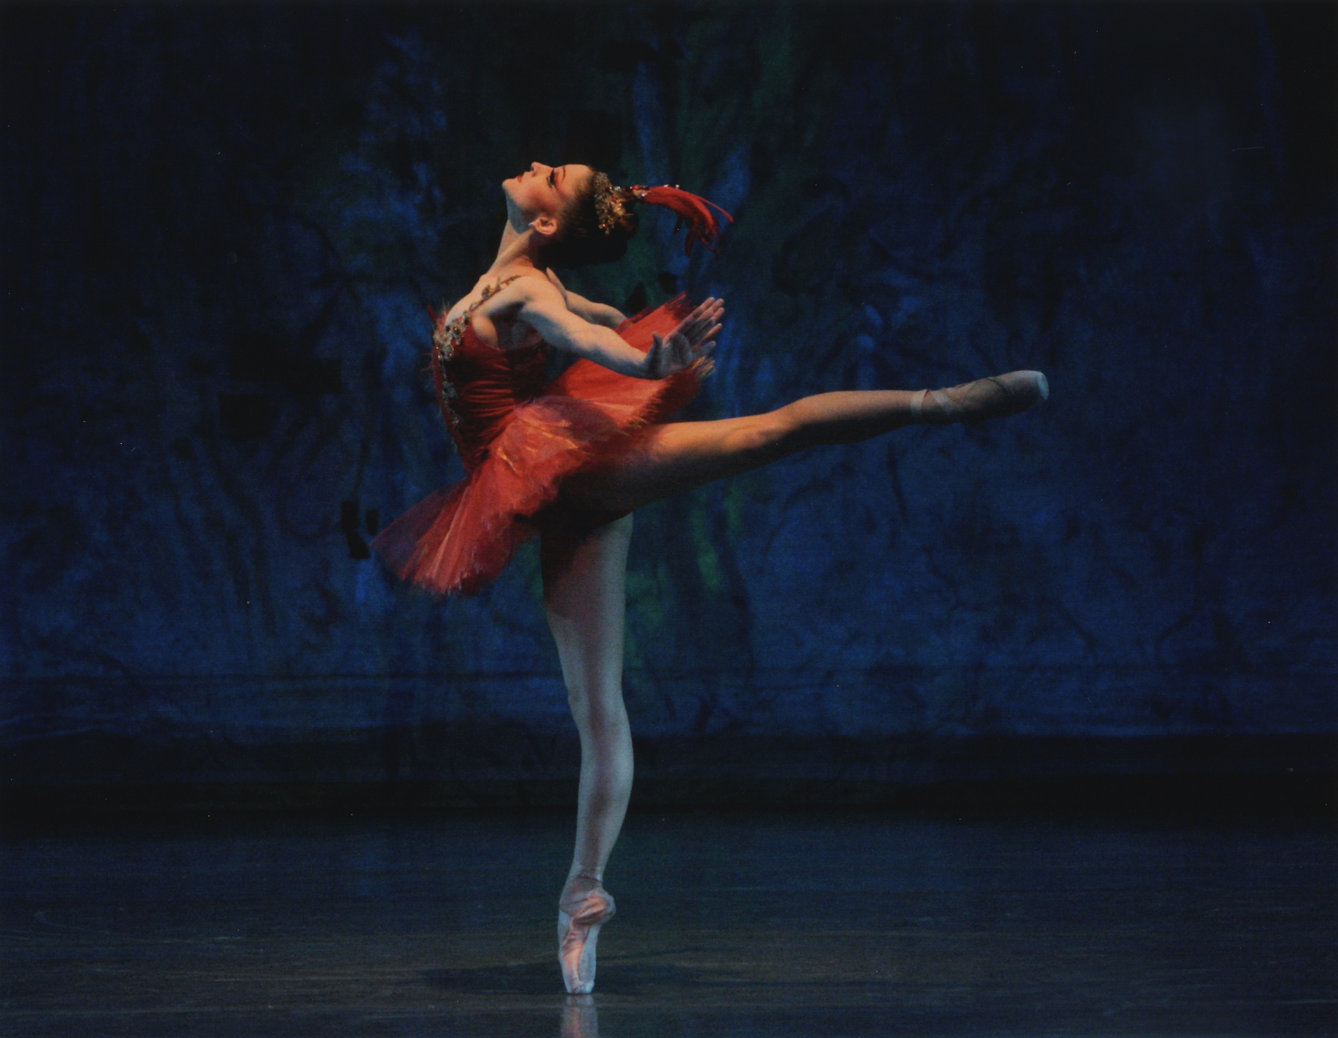 Ashley Bouder in George Balanchines' Firebird, New York City Ballet. Photo credit: Paul Kolnik